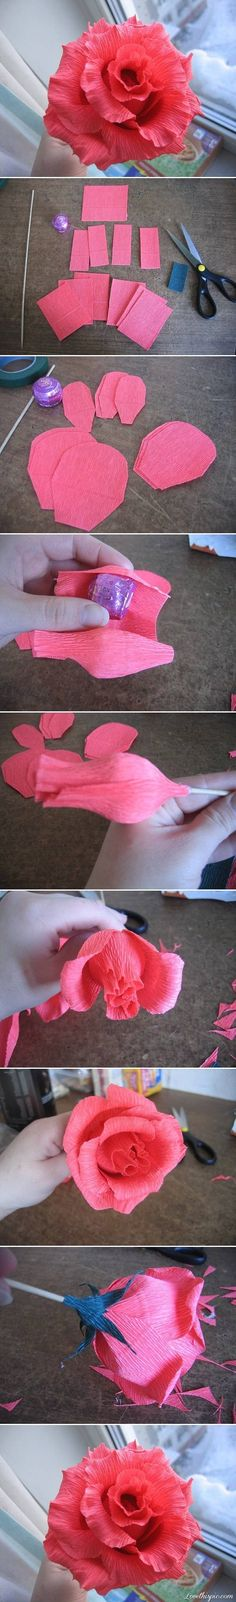 DIY Roses flowers diy crafts home made easy crafts craft idea crafts ideas diy ideas diy crafts diy idea do it yourself diy projects diy craft handmade how to tutorial Handmade Flowers, Diy Flowers, Fabric Flowers, Flower Bouquets, Real Flowers, Diy Paper, Paper Crafts, Diy Fleur, Fleurs Diy